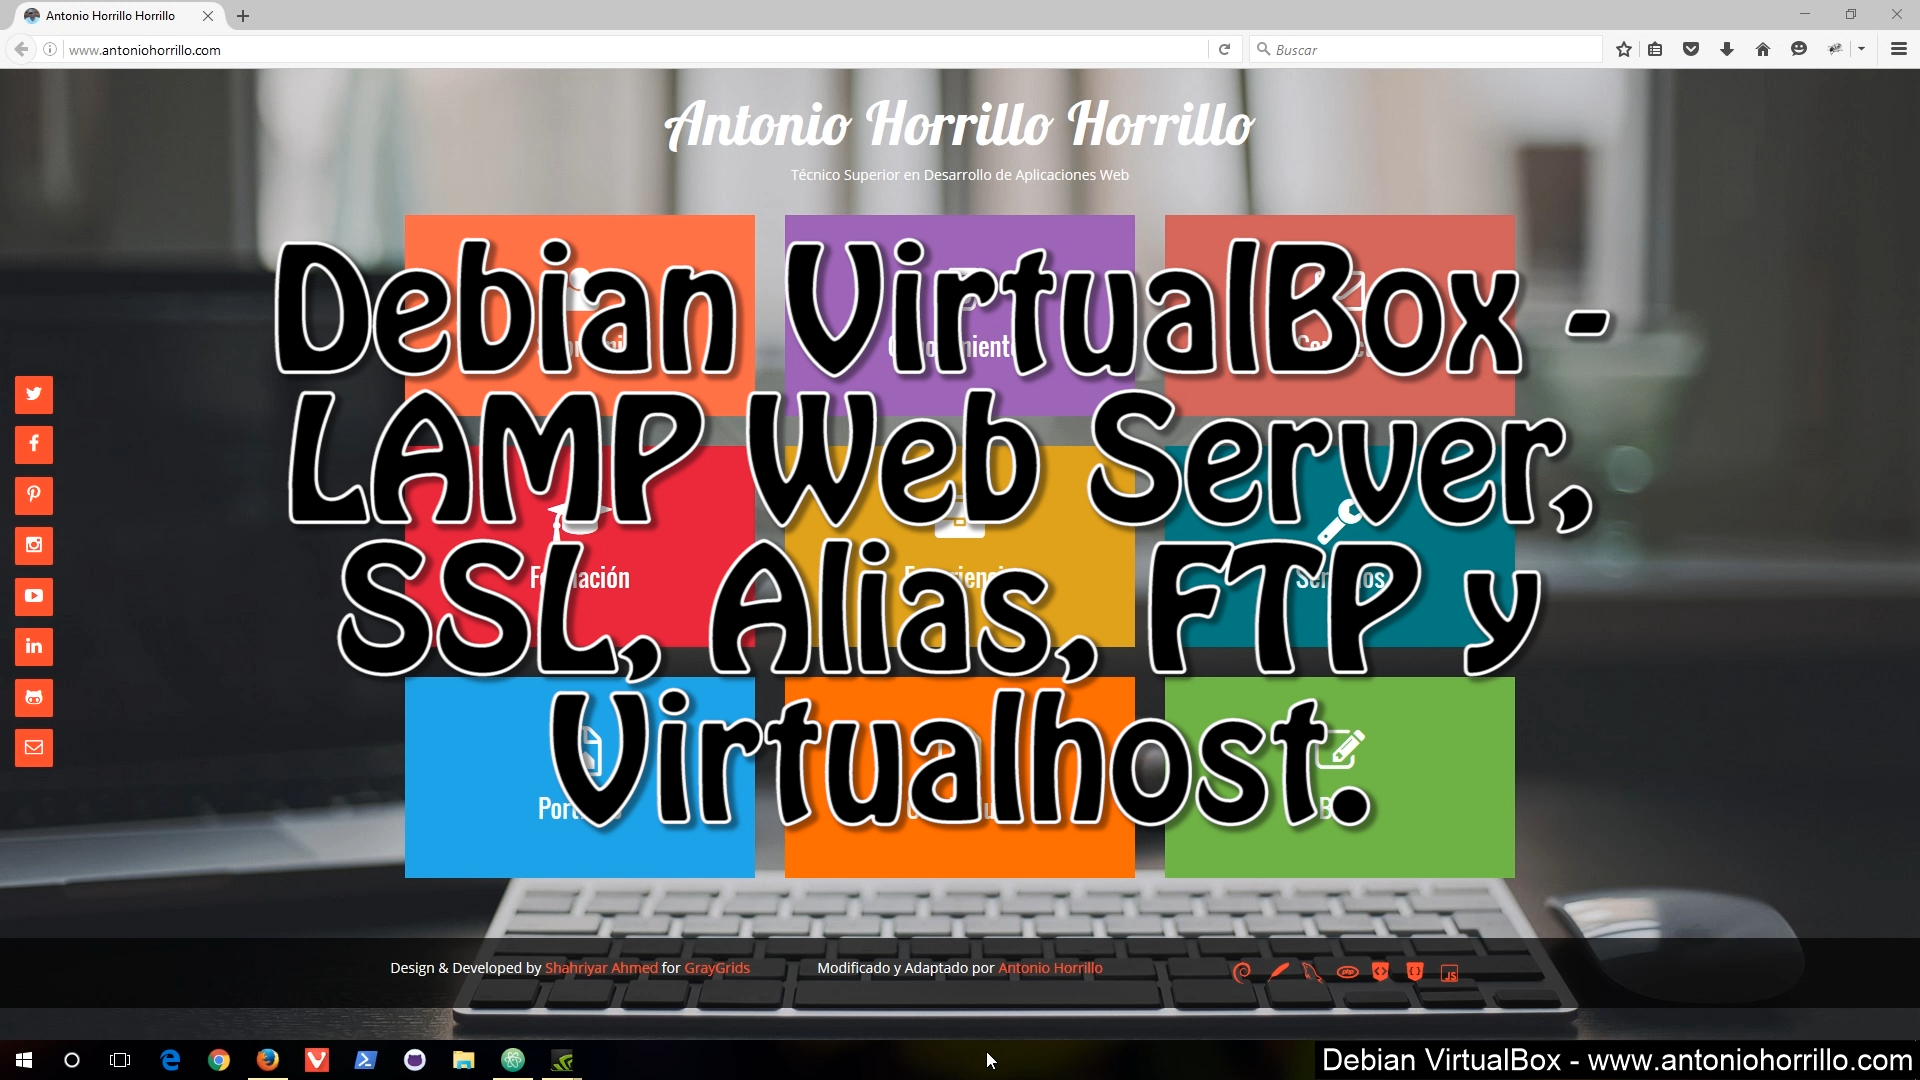 Debian VirtualBox - LAMP Web Server, SSL, Alias, FTP y Virtualhost.